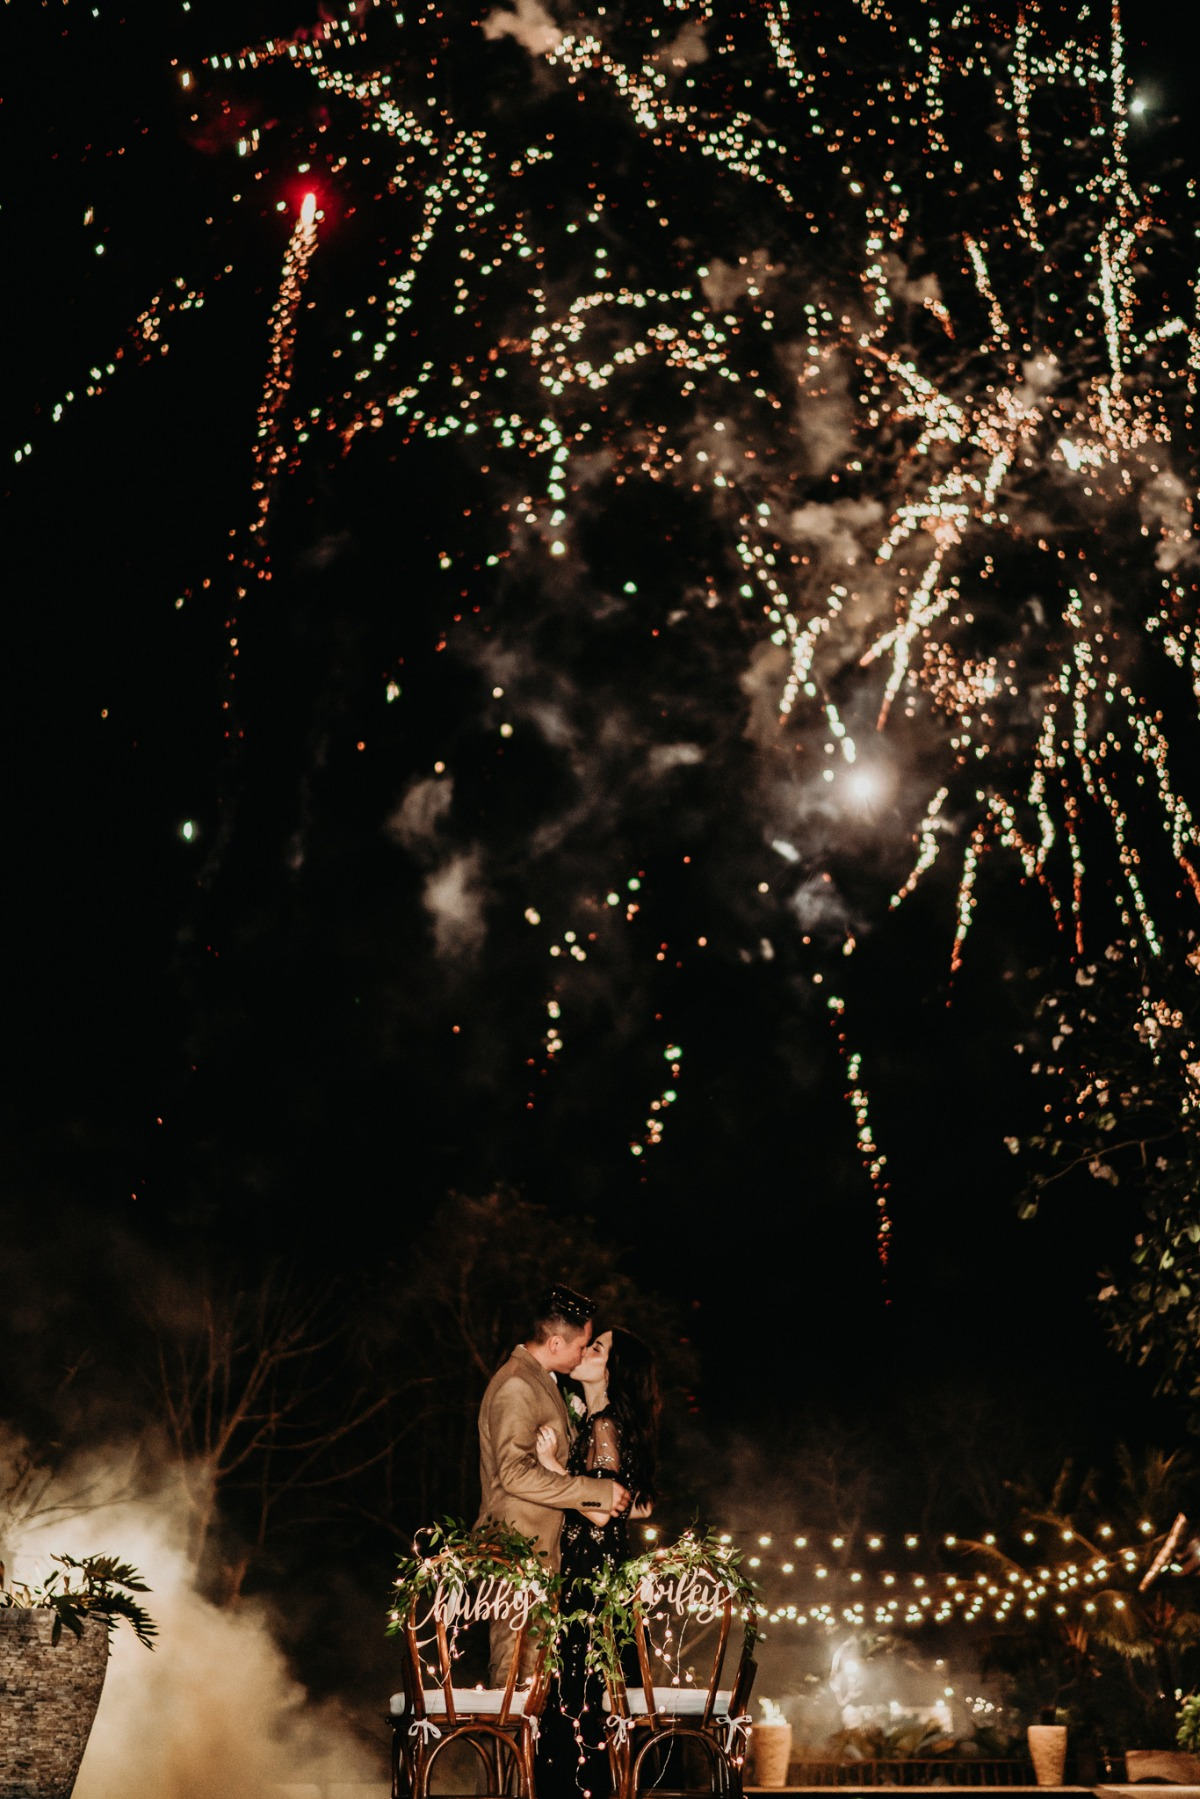 Fireworks at the end of wedding